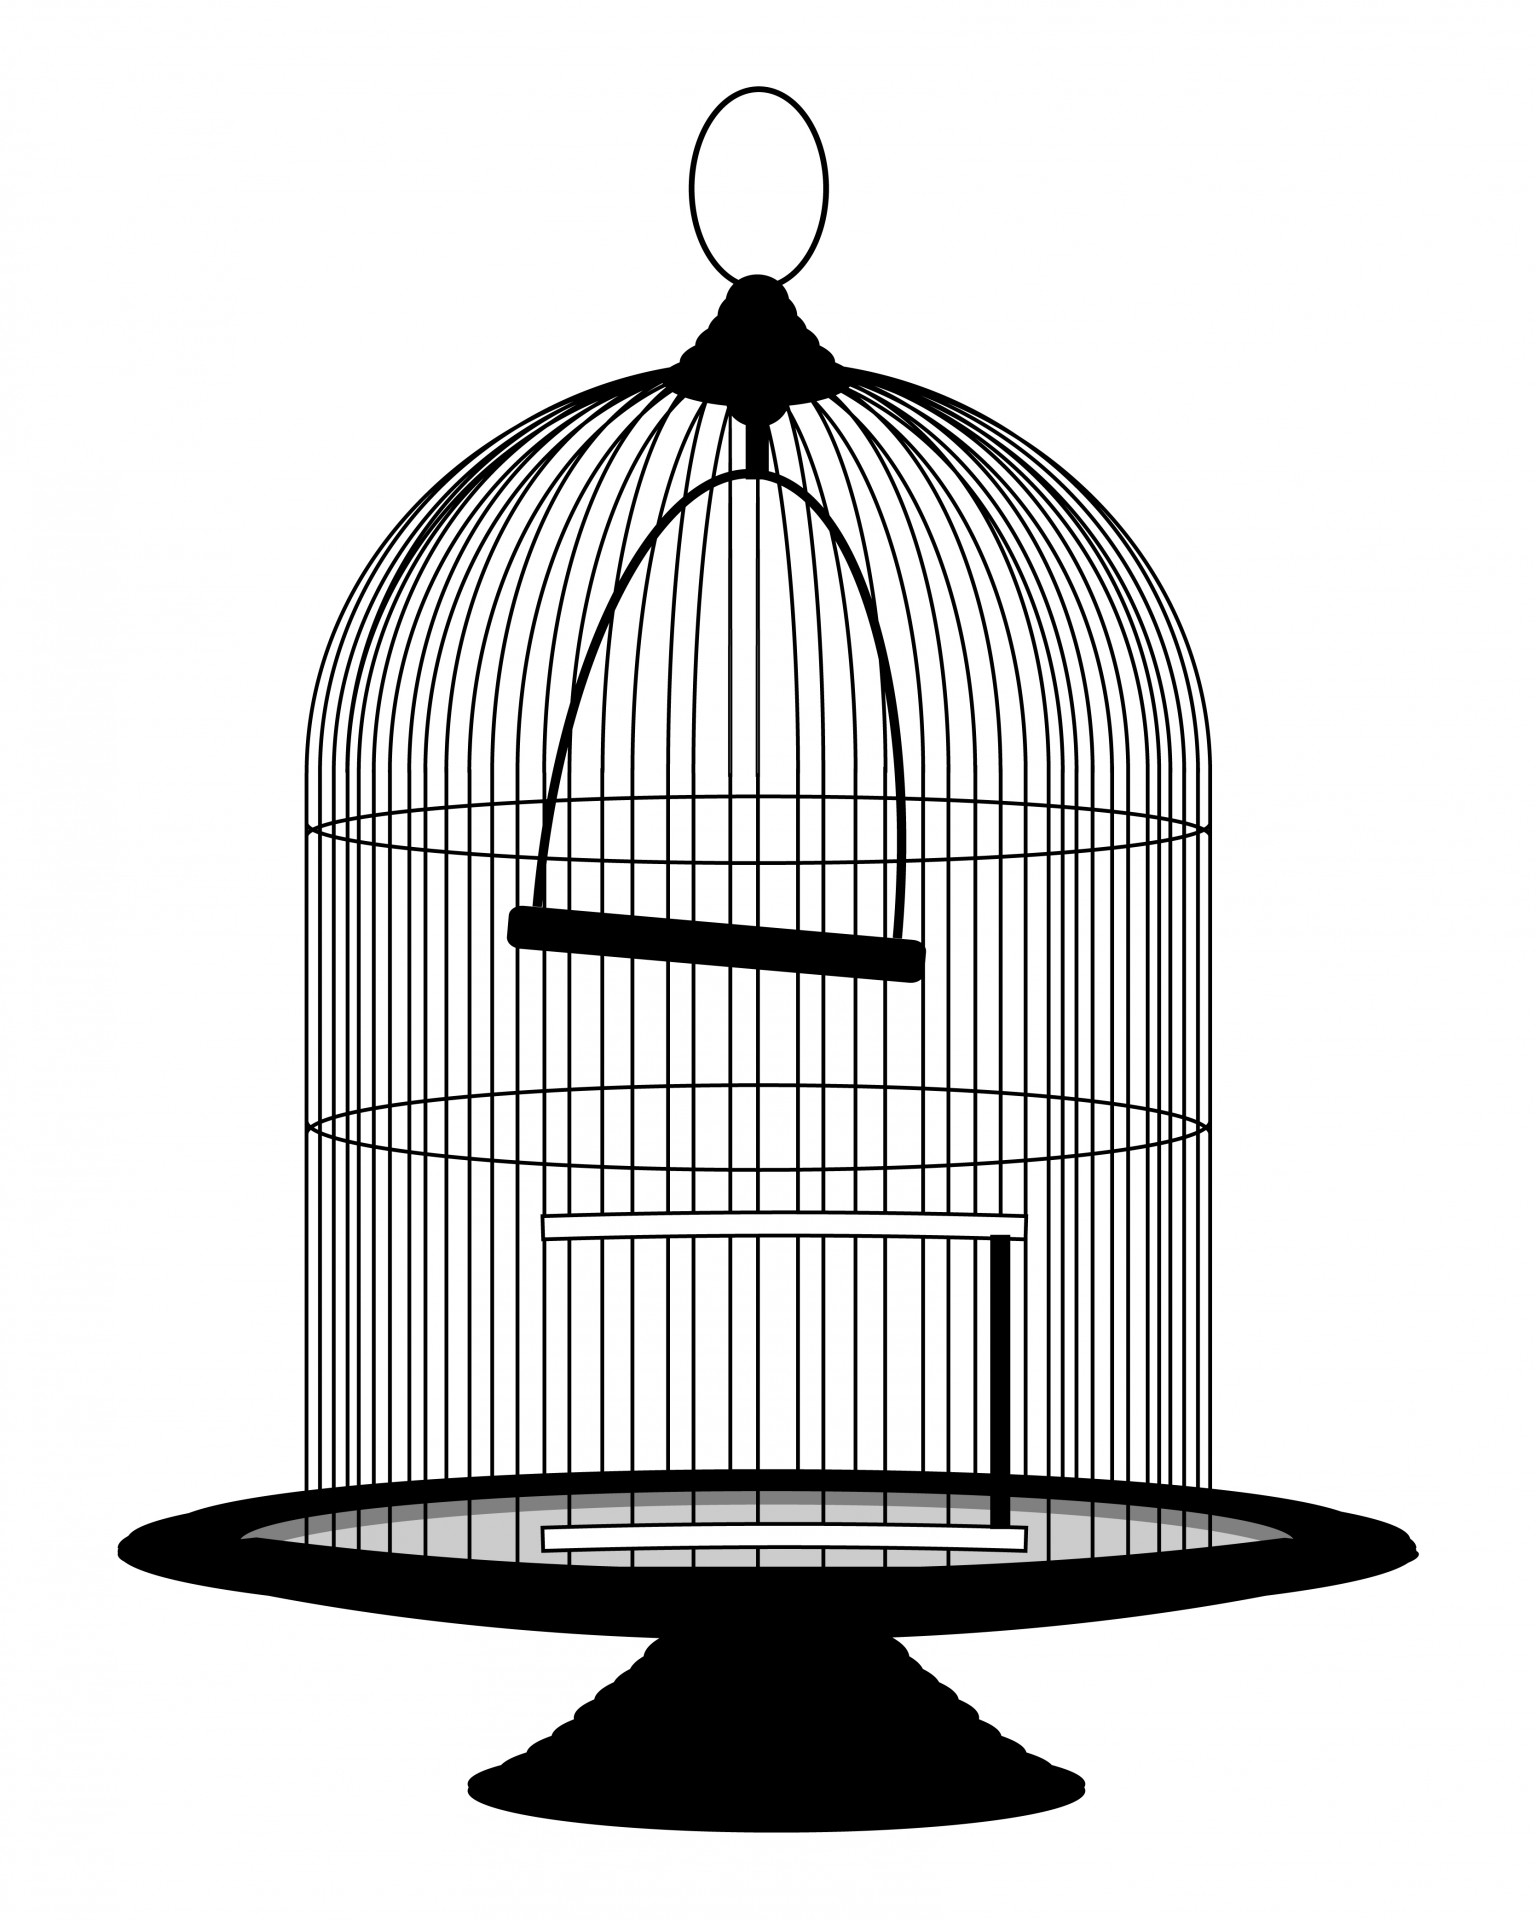 Vintage Birdcage Victorian Clipart Free Stock Photo Hd   Public Domain